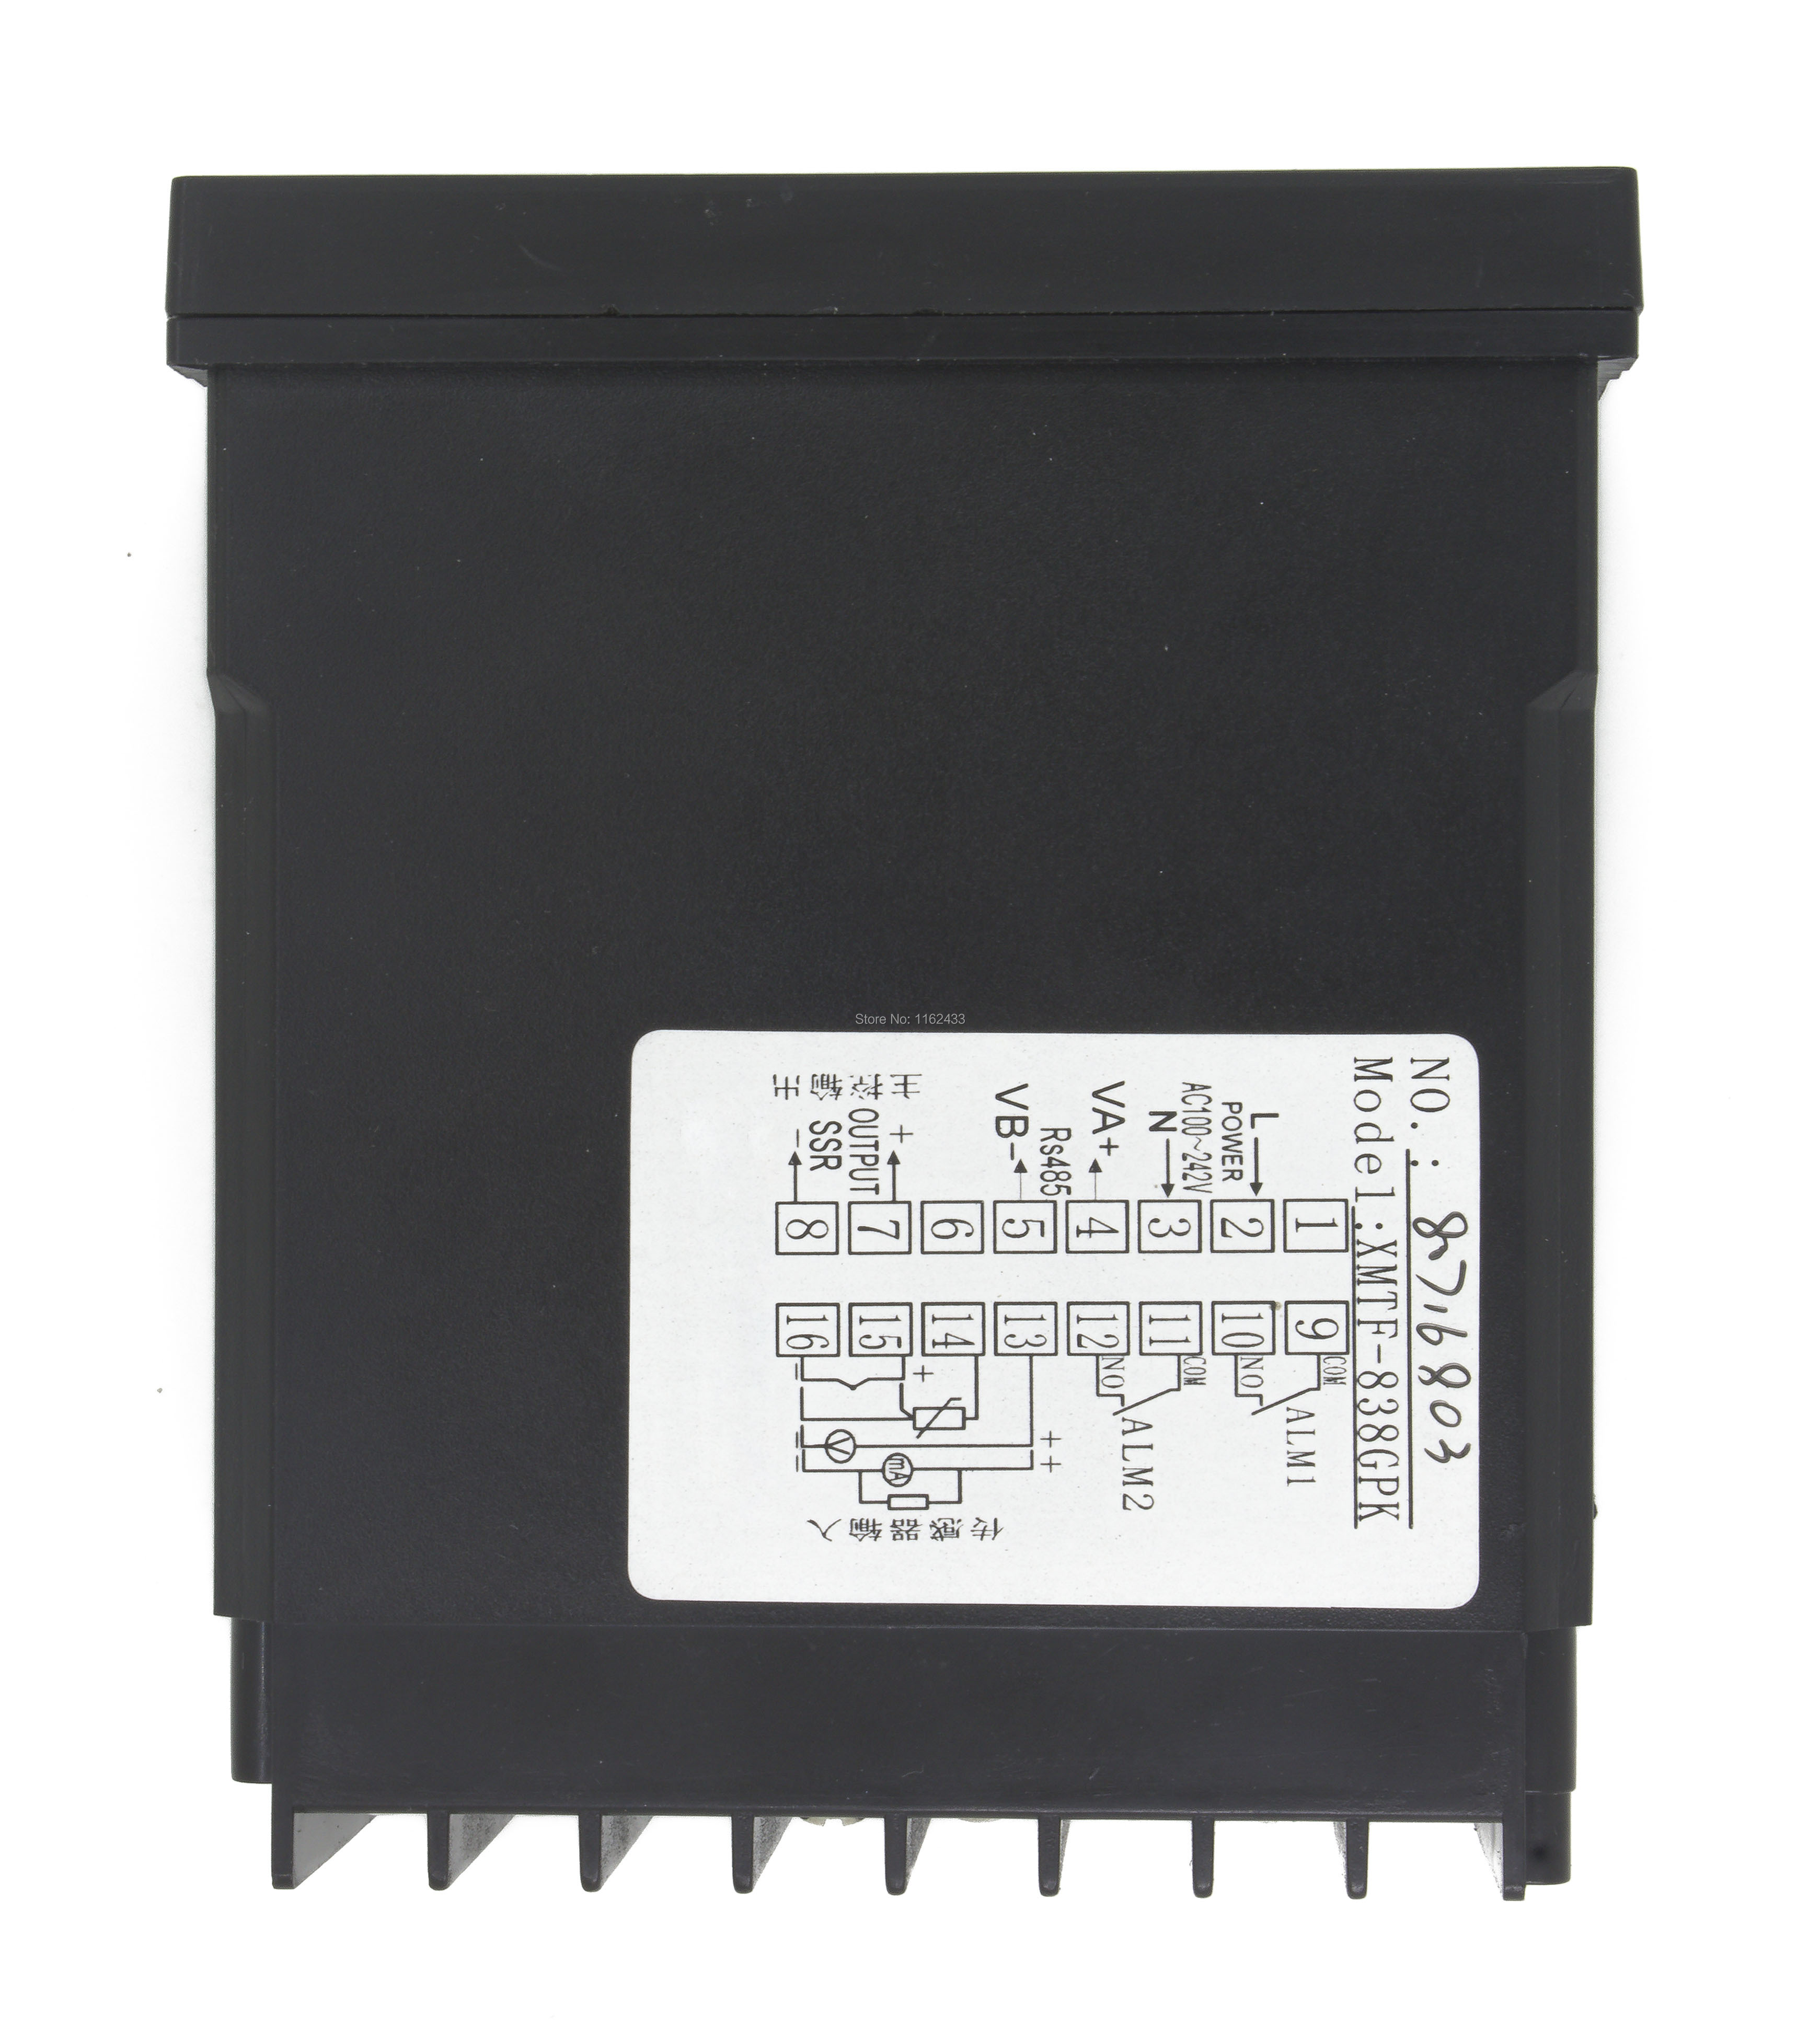 medium resolution of xmtf 8 rs485 modbus interface ramp soak digital temperature controller relay ssr 0 22ma scr output in temperature instruments from tools on aliexpress com